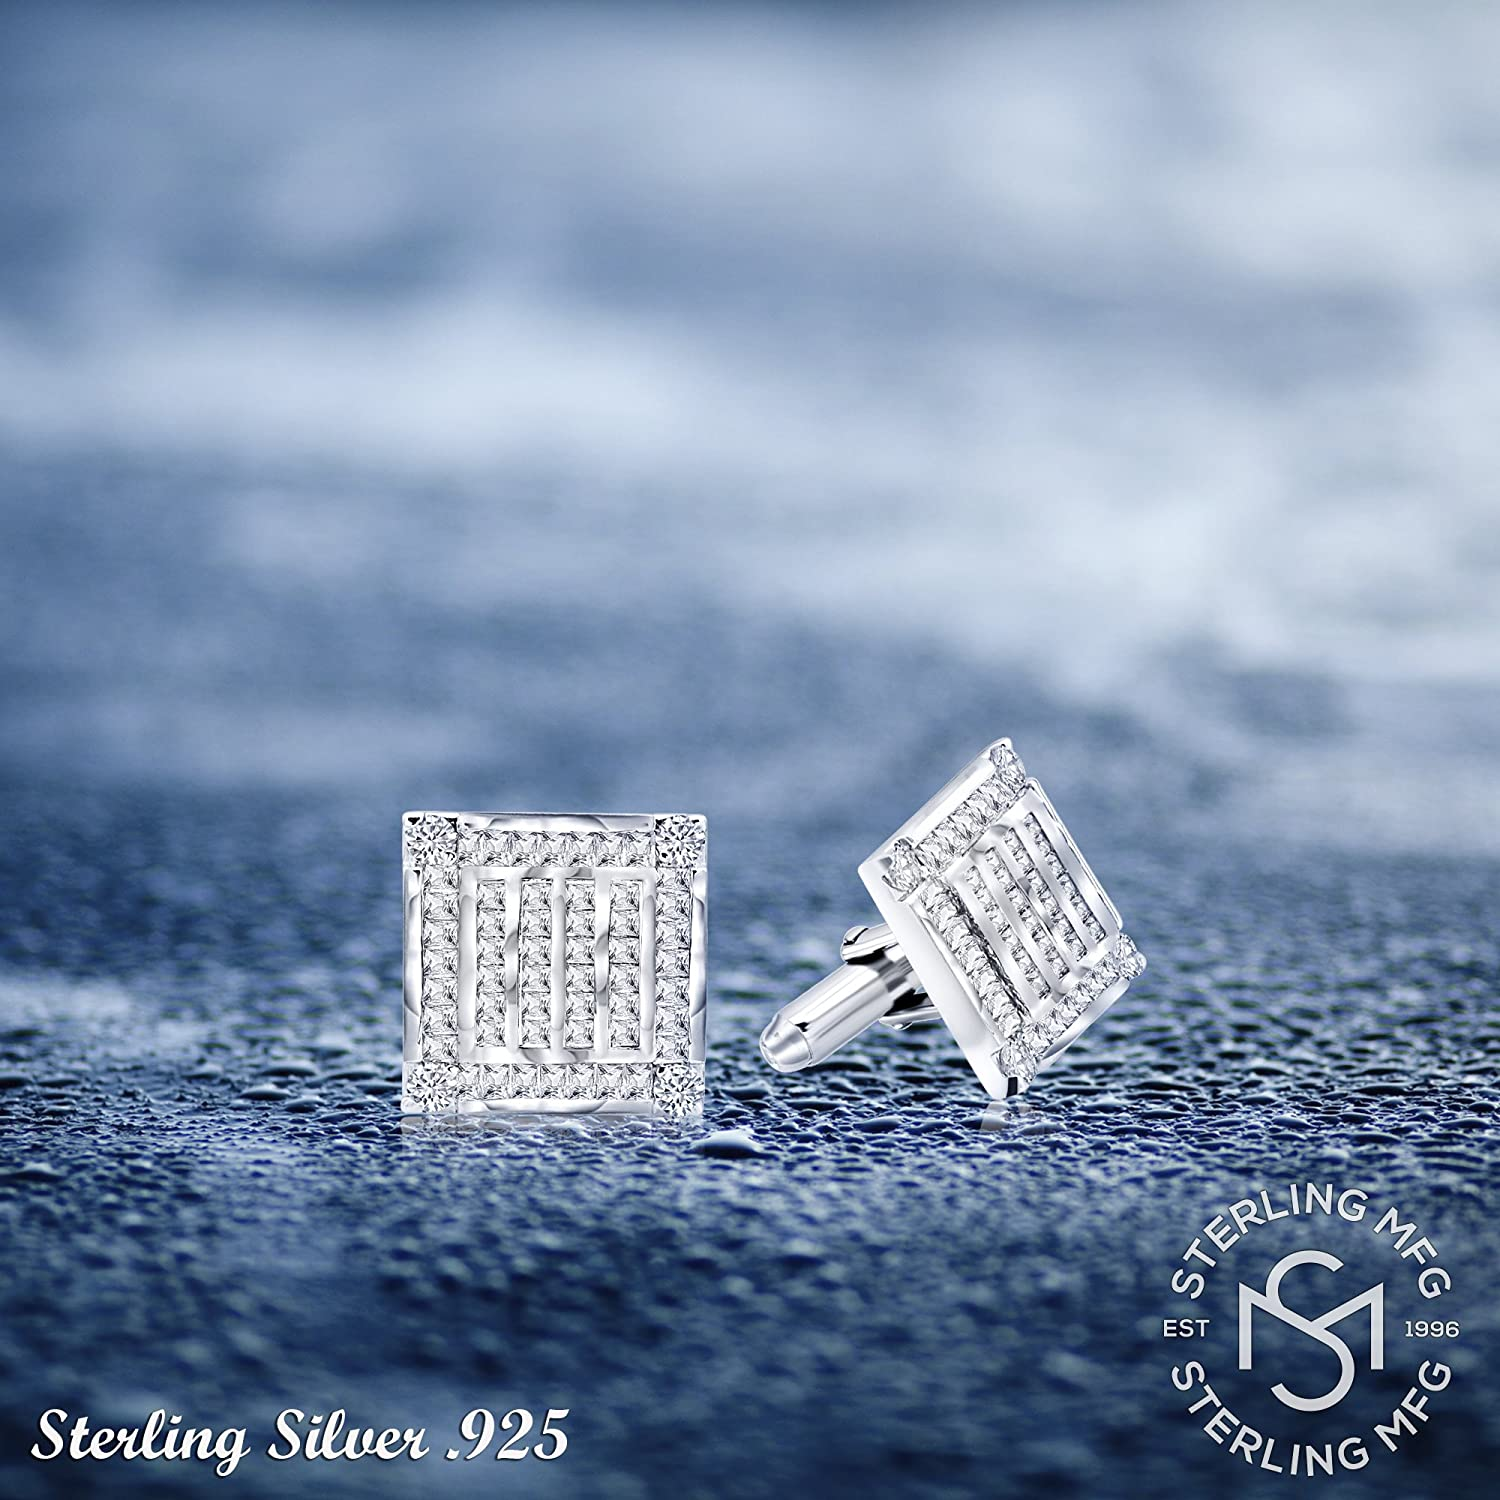 Mens Sterling Silver .925 Square Cufflinks with Channel-Set Baguette and Princess-Cut Cubic Zirconia Stones Platinum Plated By Sterling Manufacturers 18.5 mm